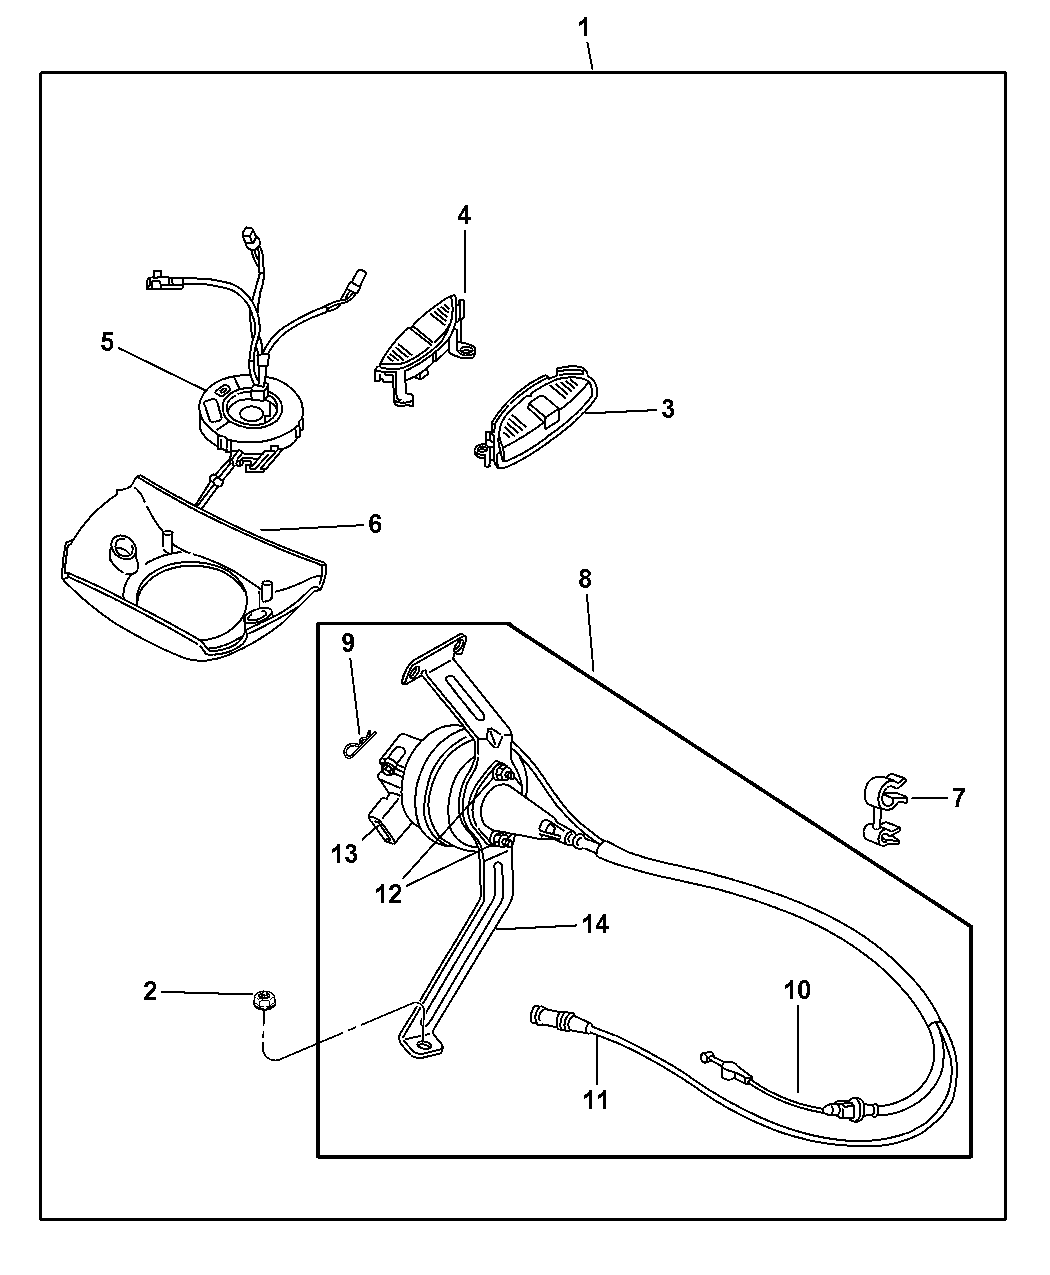 5015843aa Genuine Dodge Bracket Cruise Control Servo Diagram 2000 Durango Speed